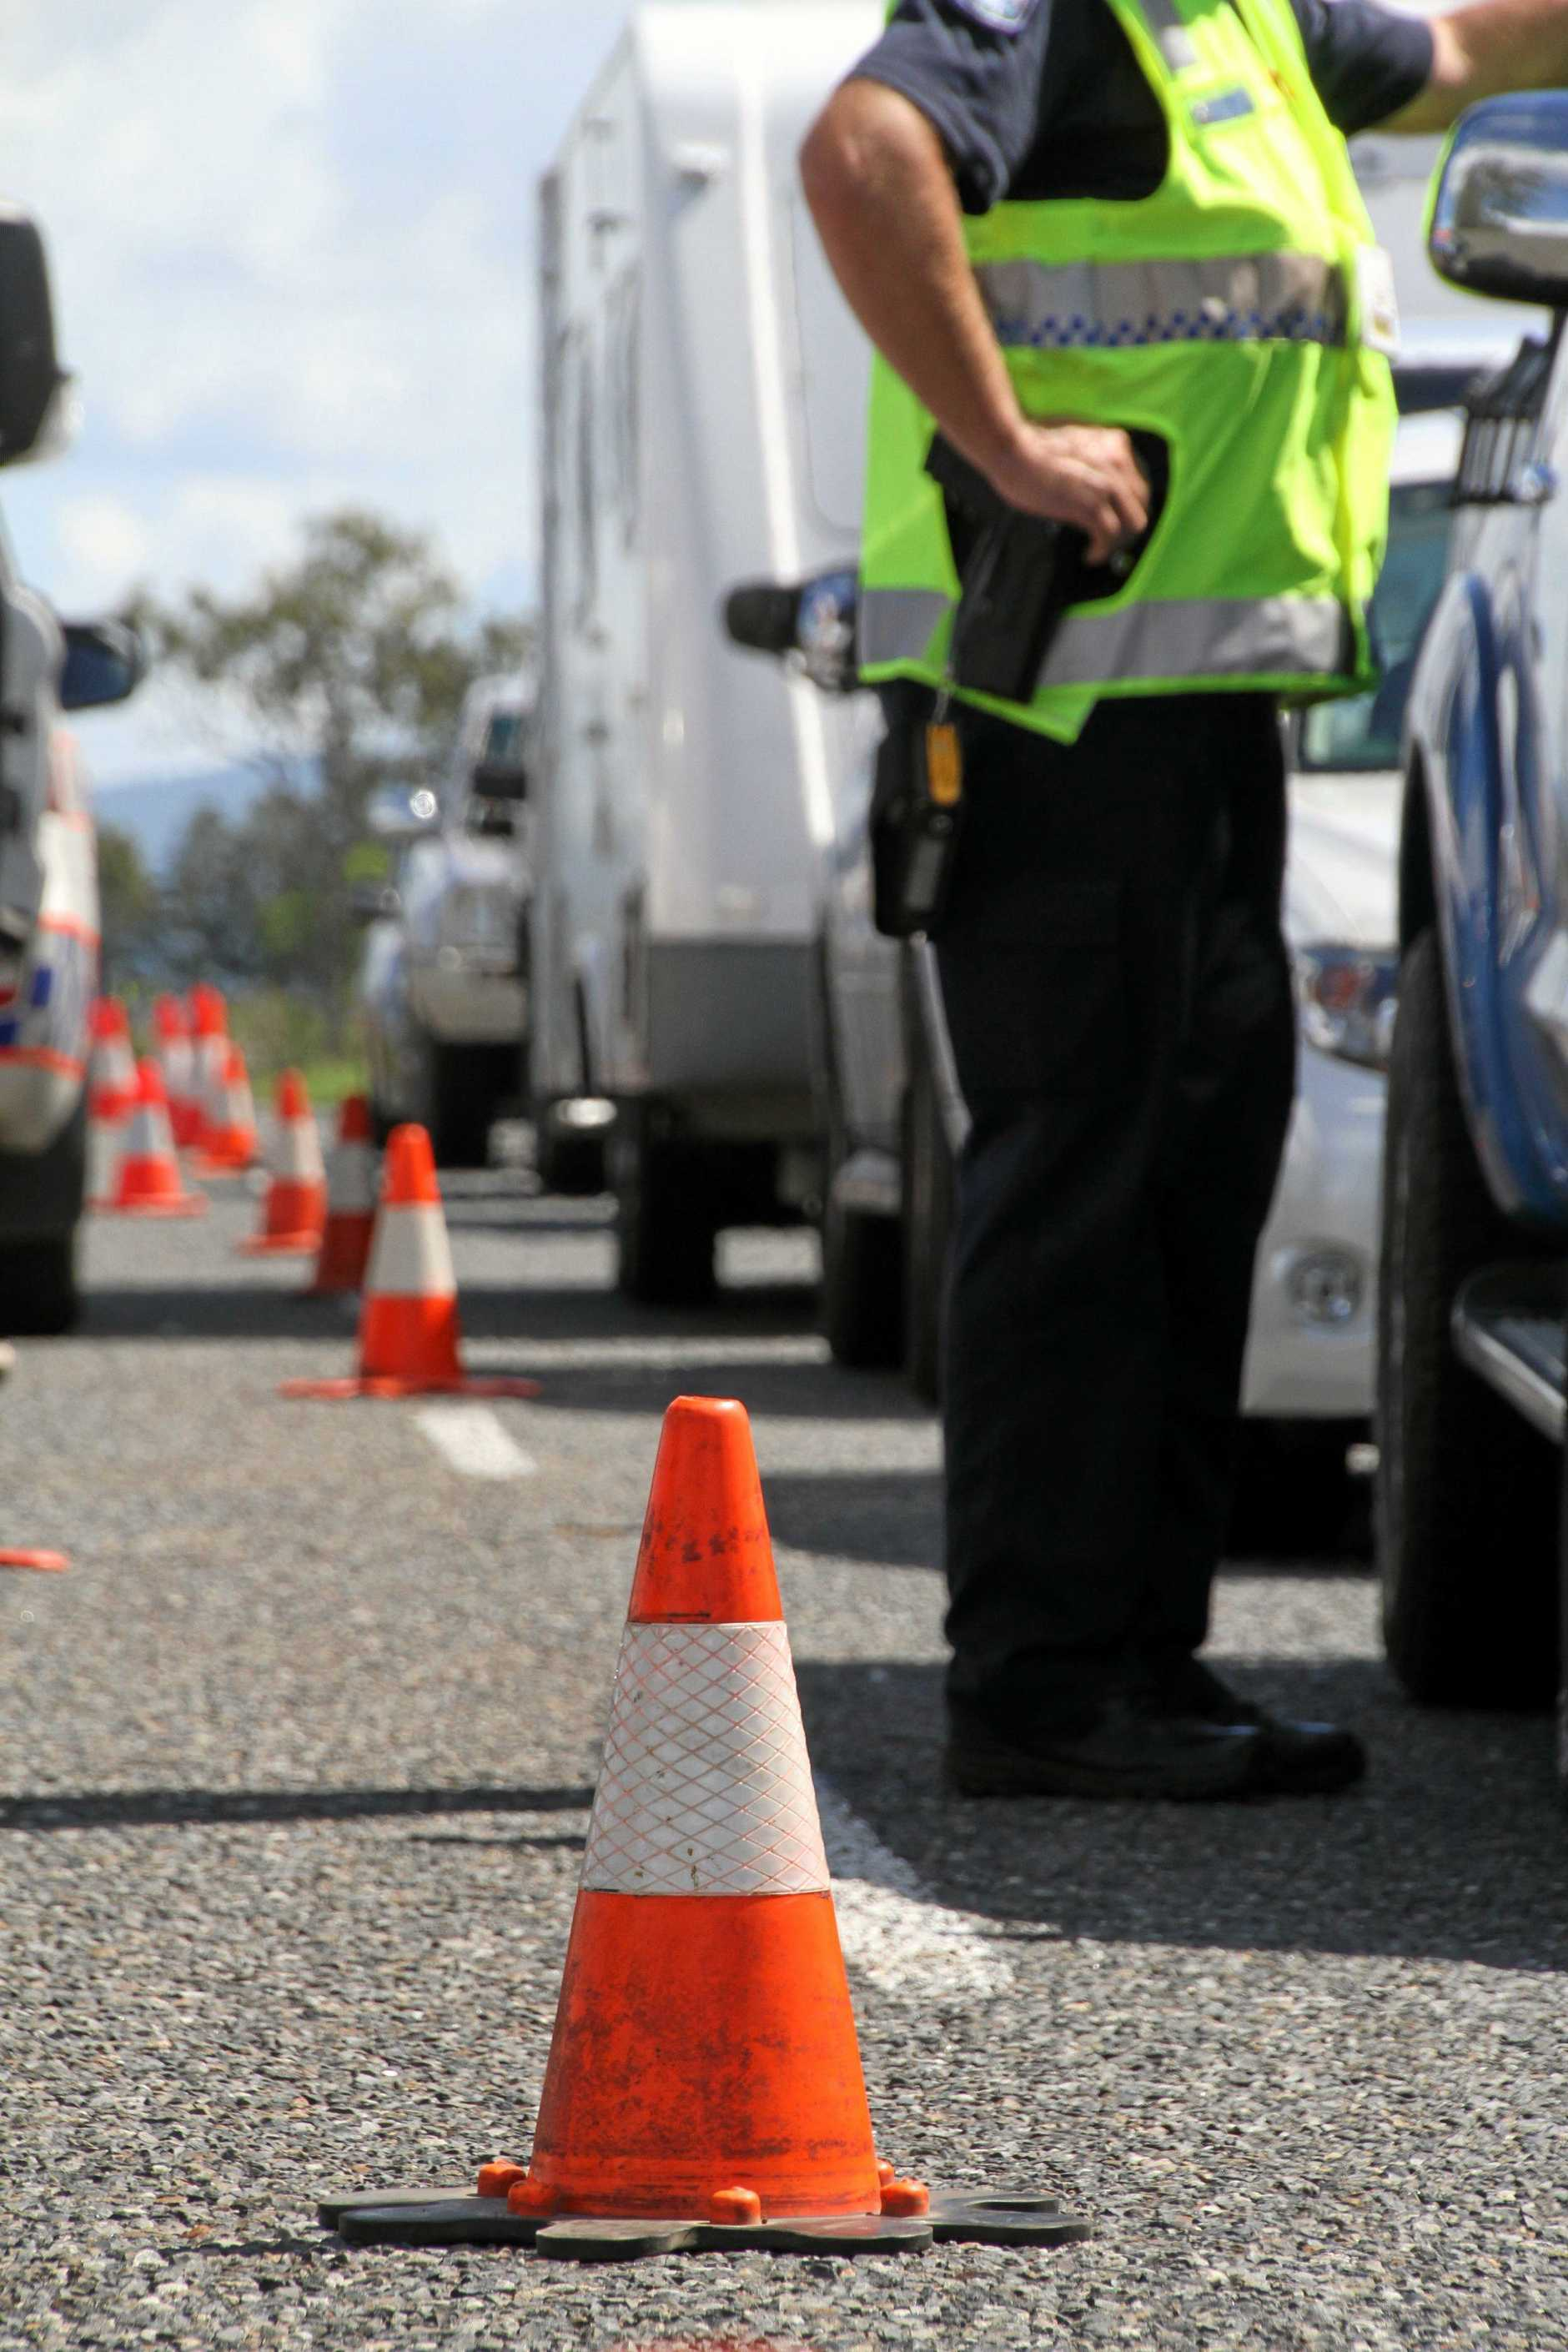 A GLADSTONE man told a magistrate he had no one to blame but himself when he got behind the wheel on the Bruce Hwy after drinking several beers.